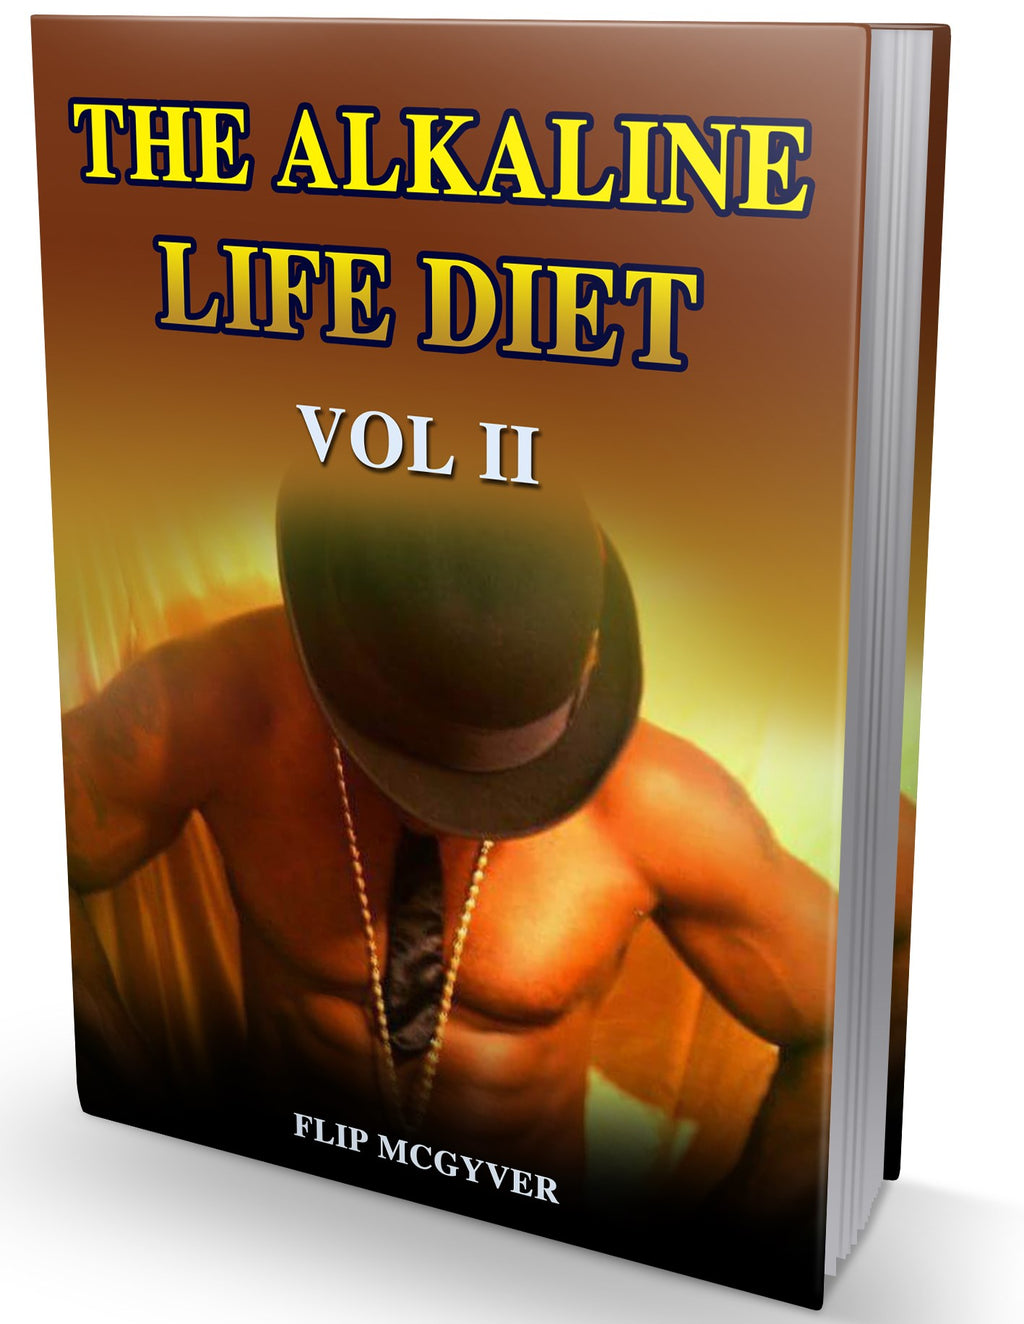 The Alkaline Life Diet Vol 2